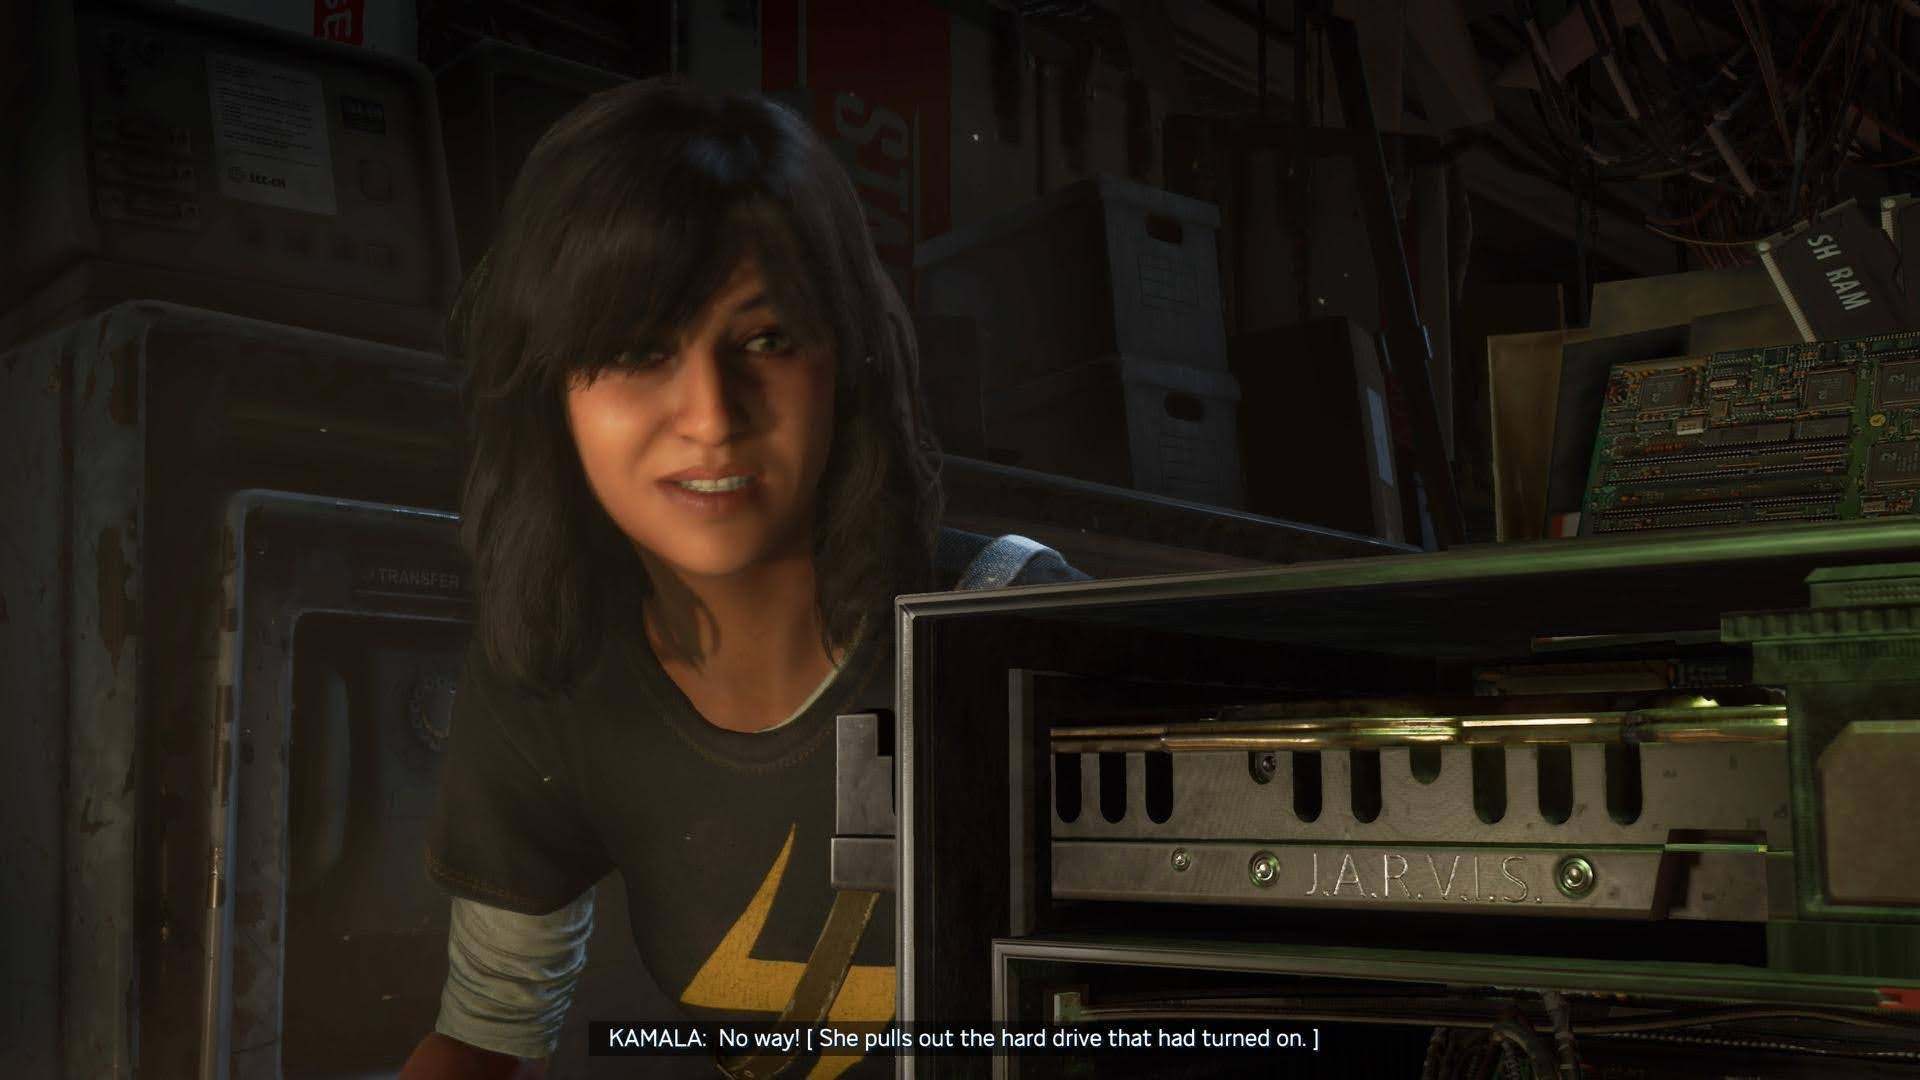 Kamala removing a hard drive from a PC tower, illustrating more closed captions.